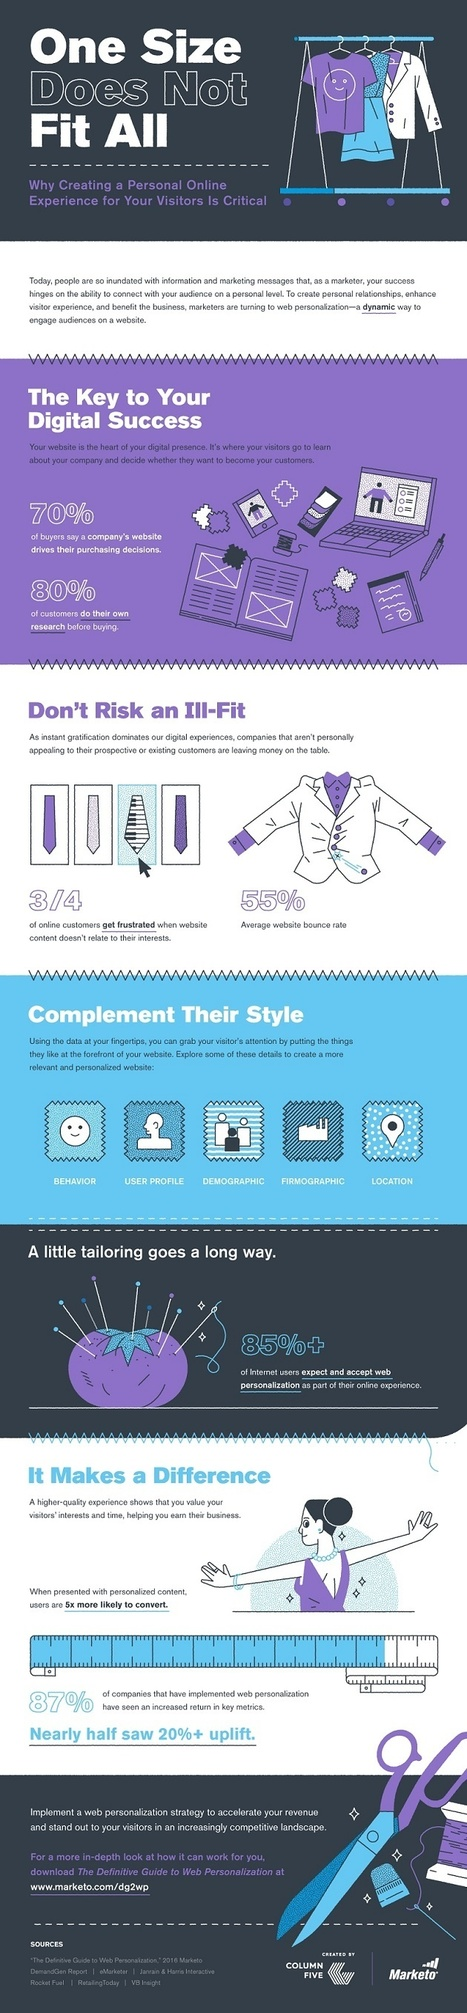 Why Creating a Personal Online Experience for Your Visitors Is Critical [Infographic] | New Customer & Employee Management | Scoop.it